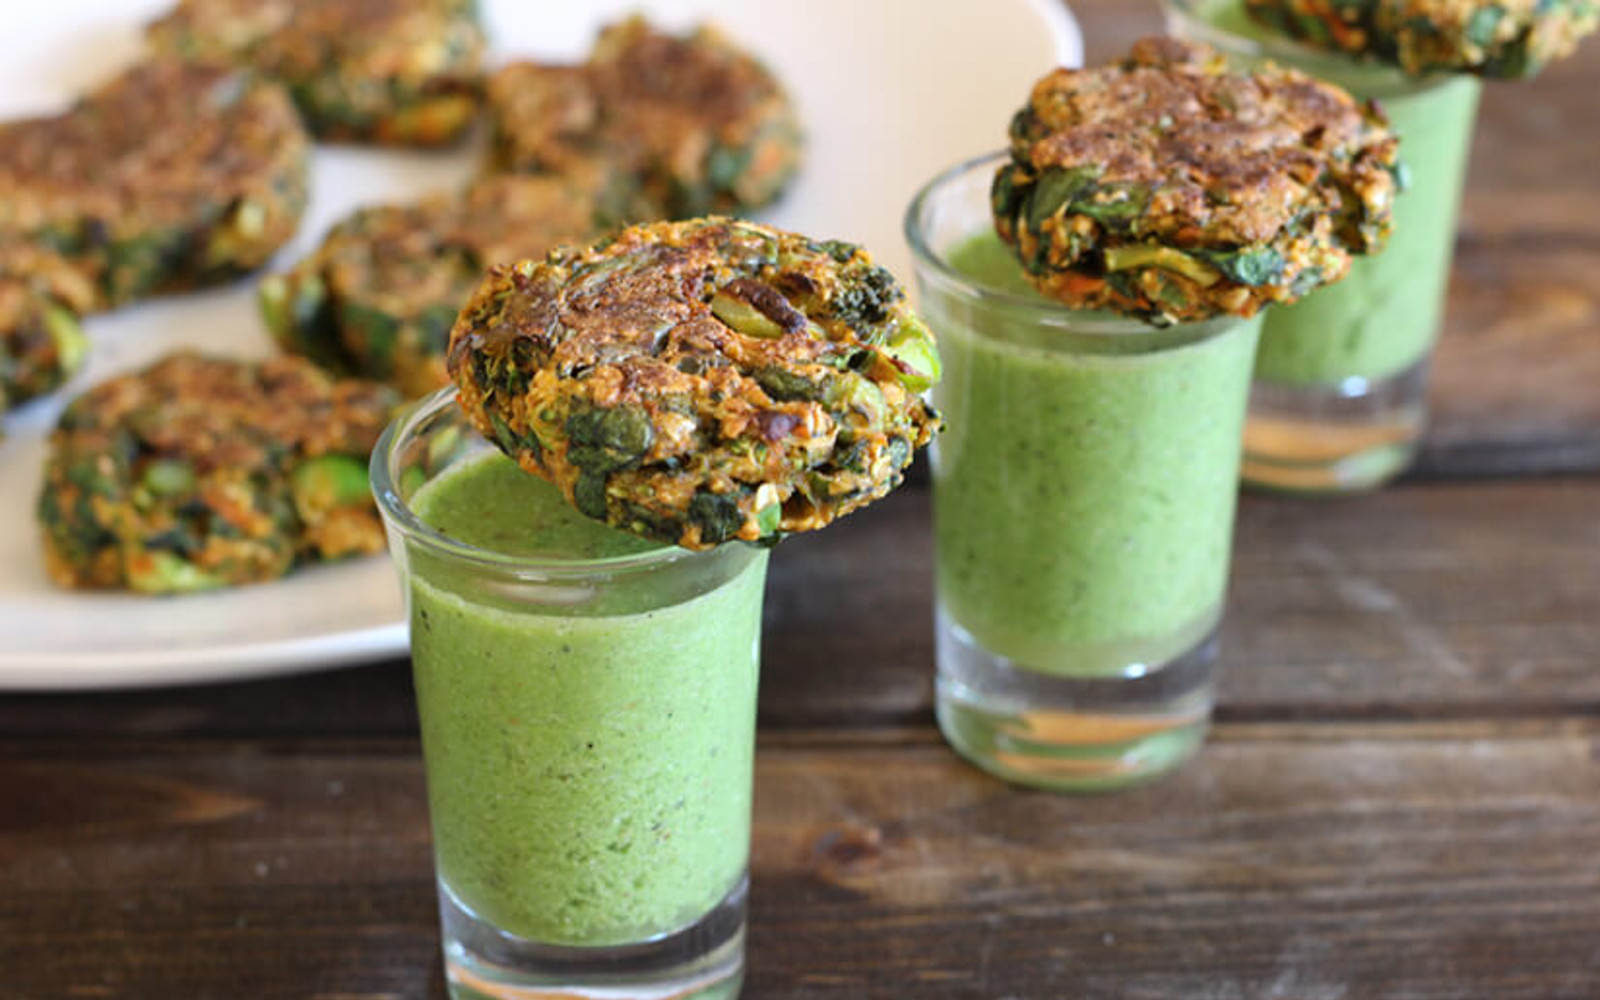 spinach and broccoli patties